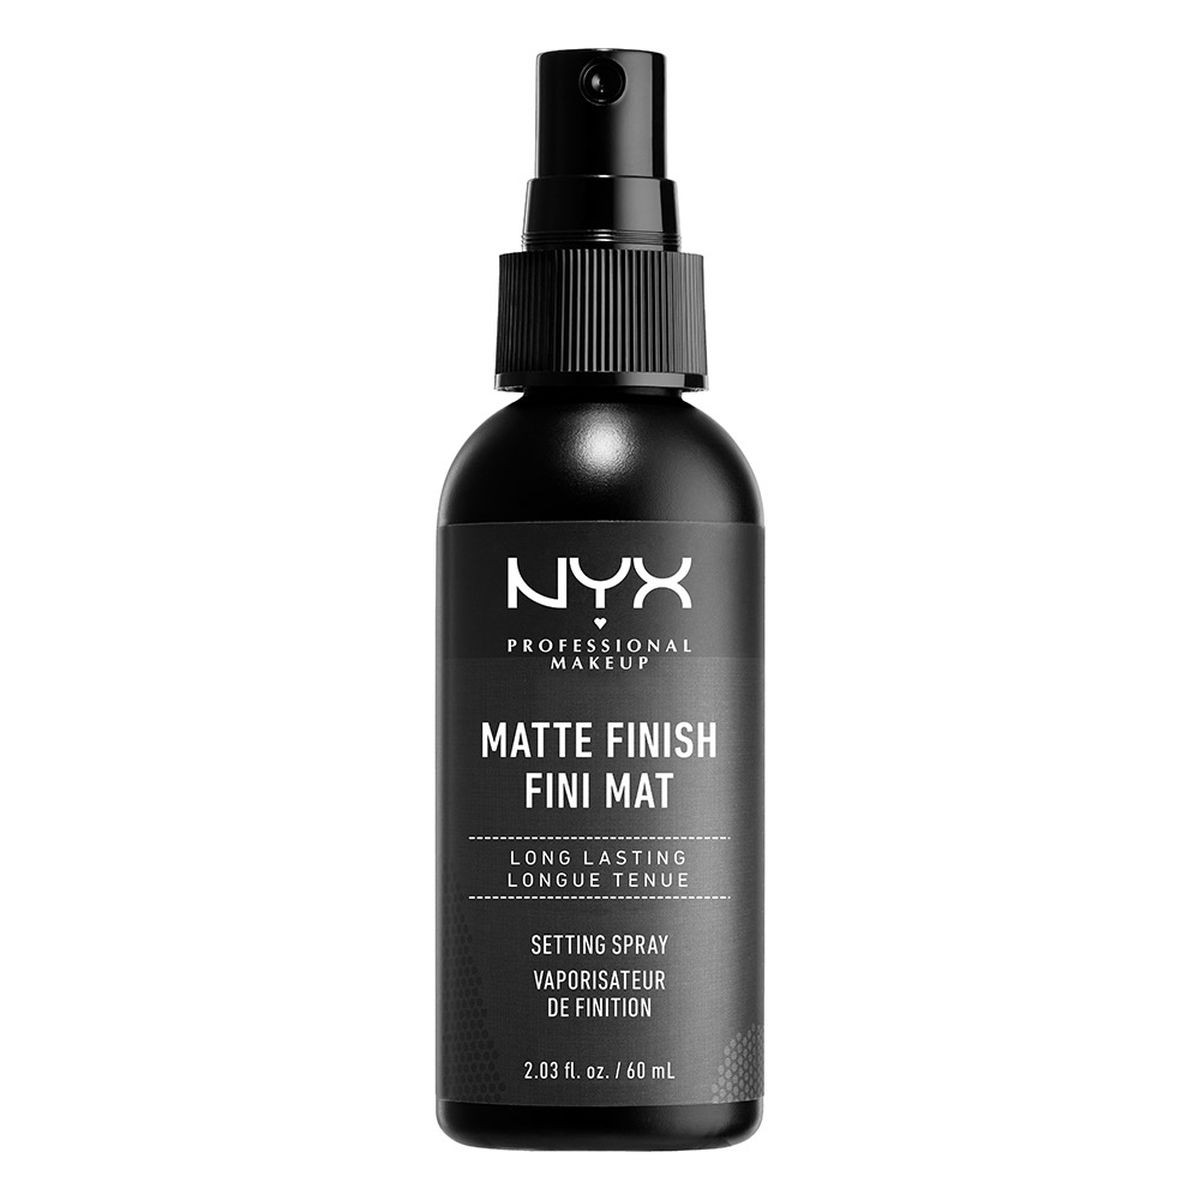 Make-Up Setting Spray - Matte Finish